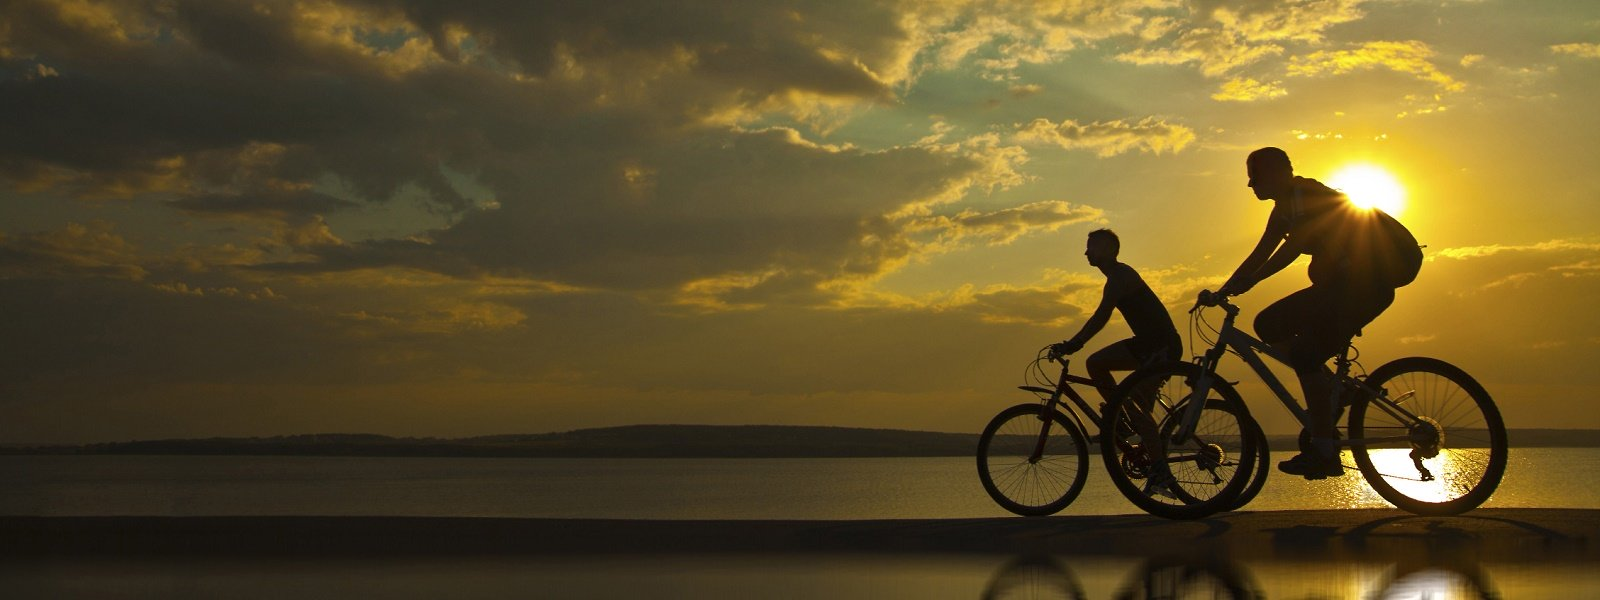 living room in spanish ideas with cream sofa physical activity for health | university of strathclyde